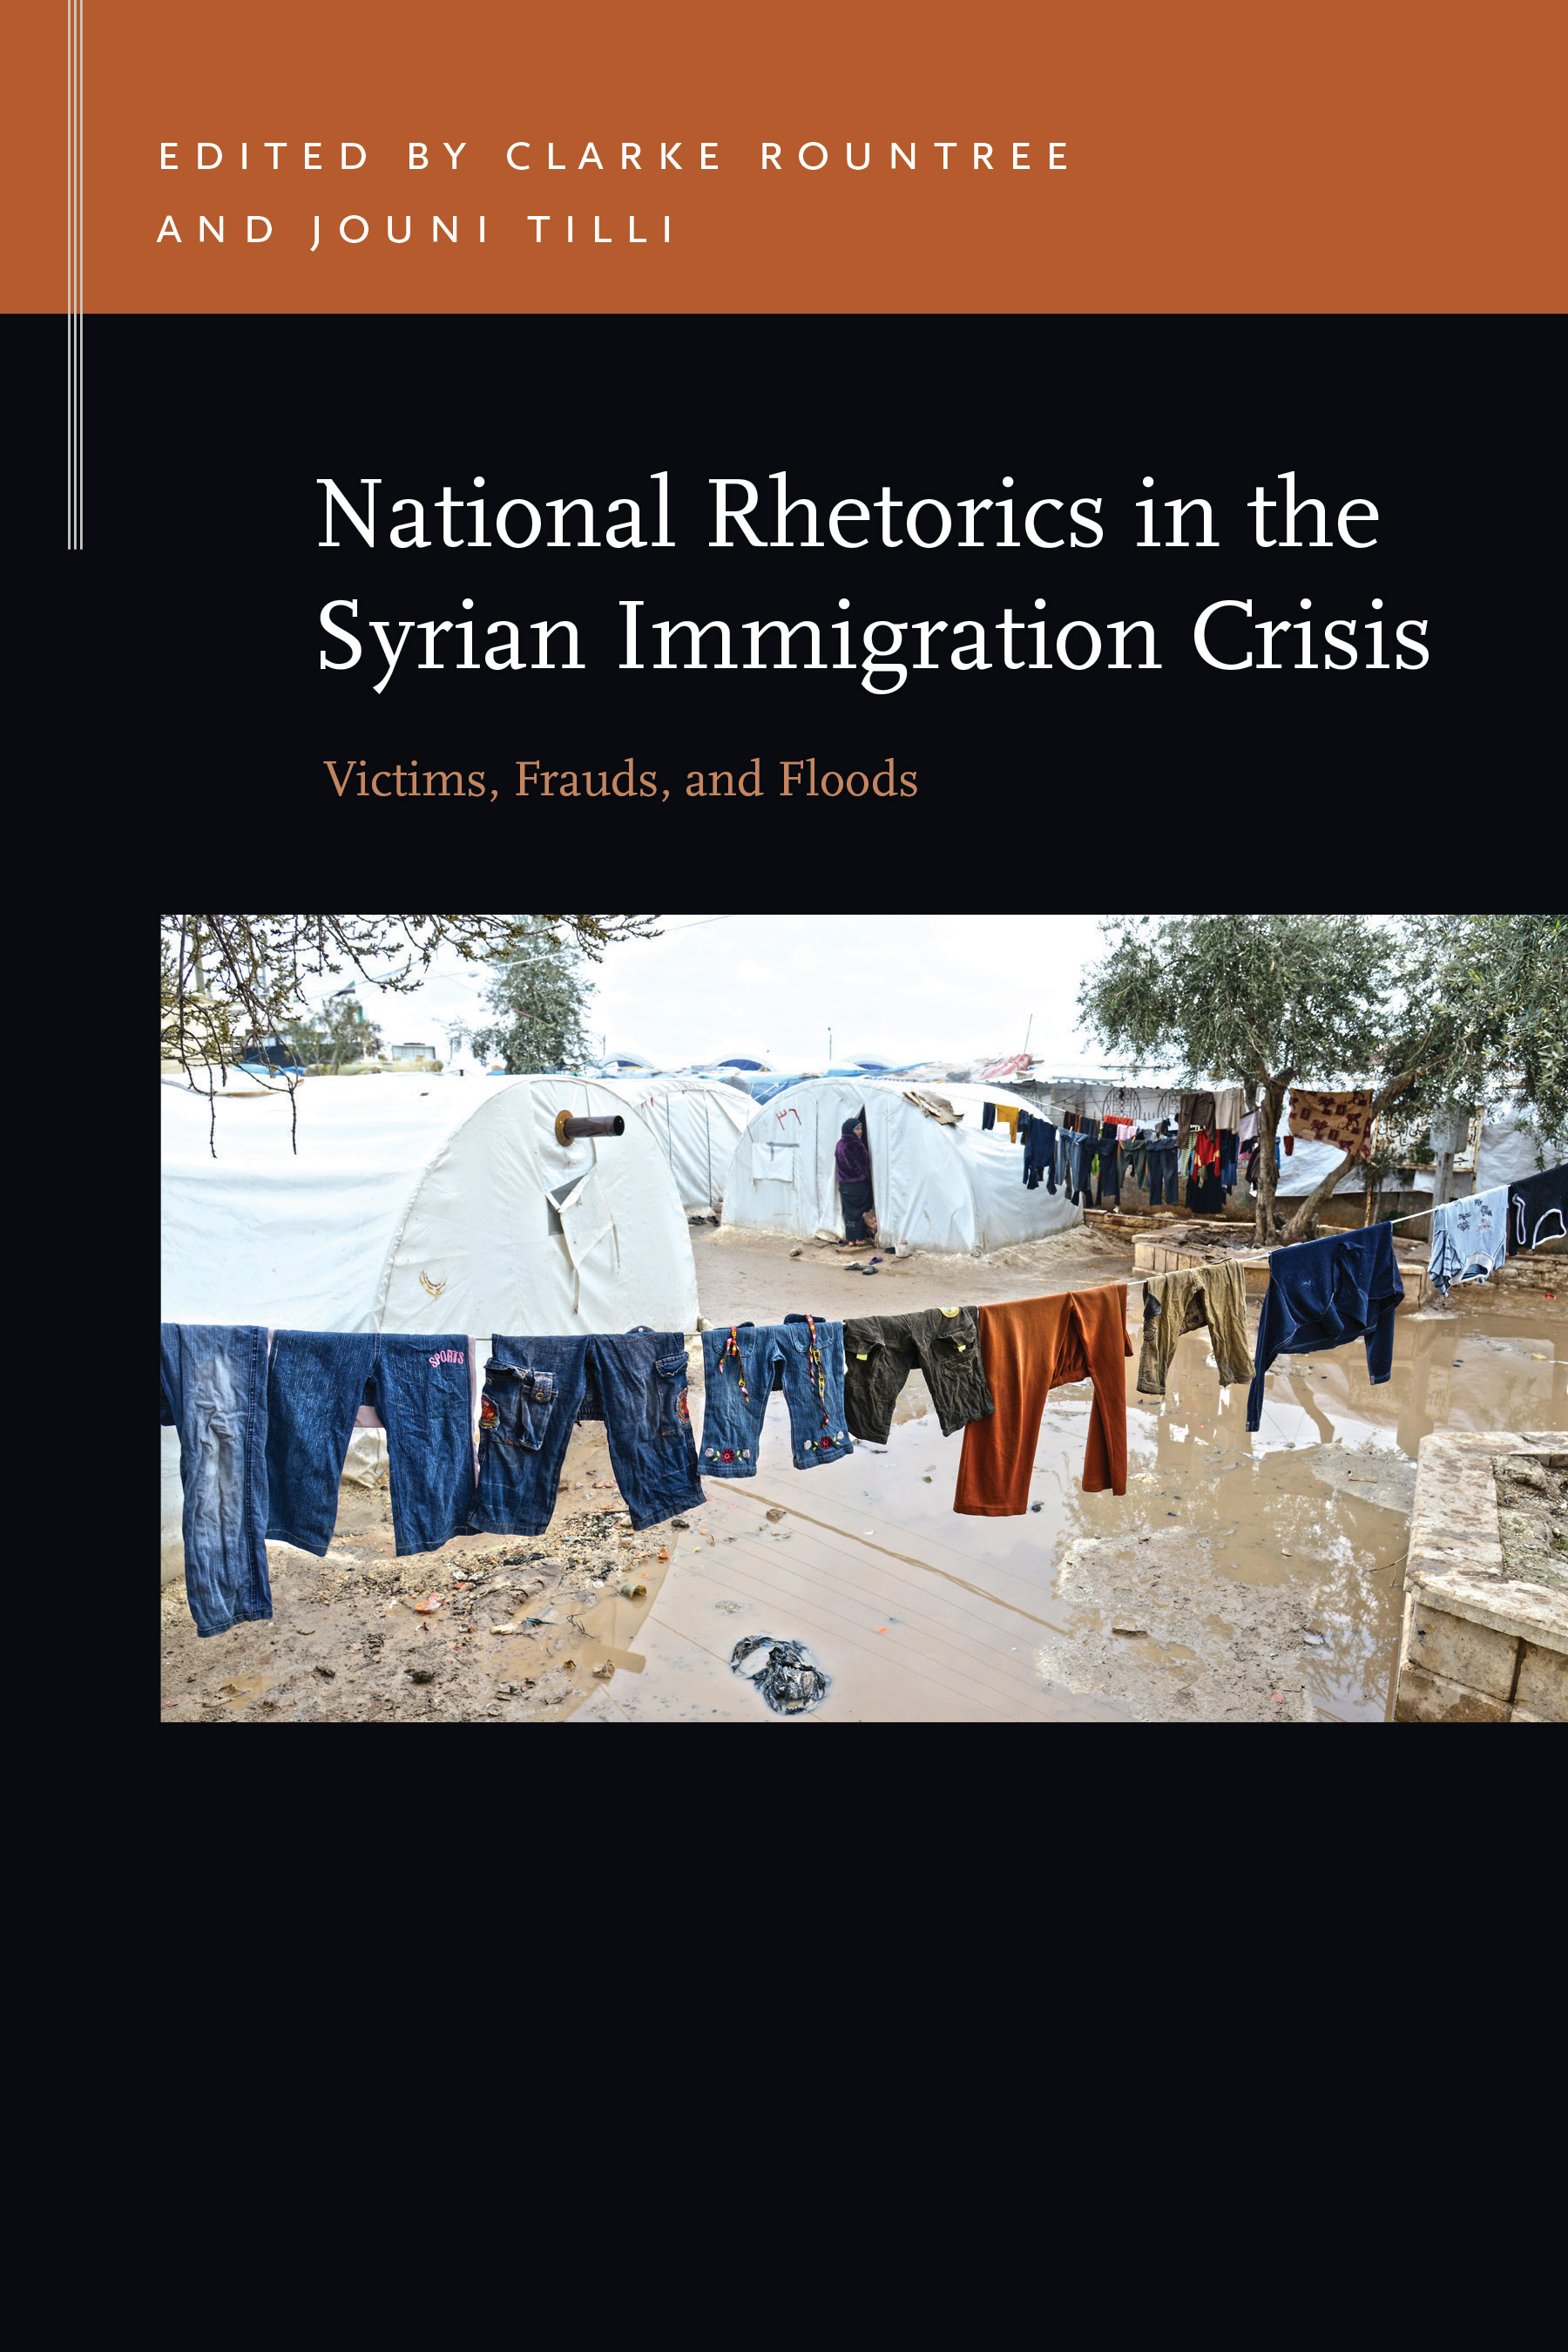 National Rhetorics in the Syrian Immigration Crisis cover